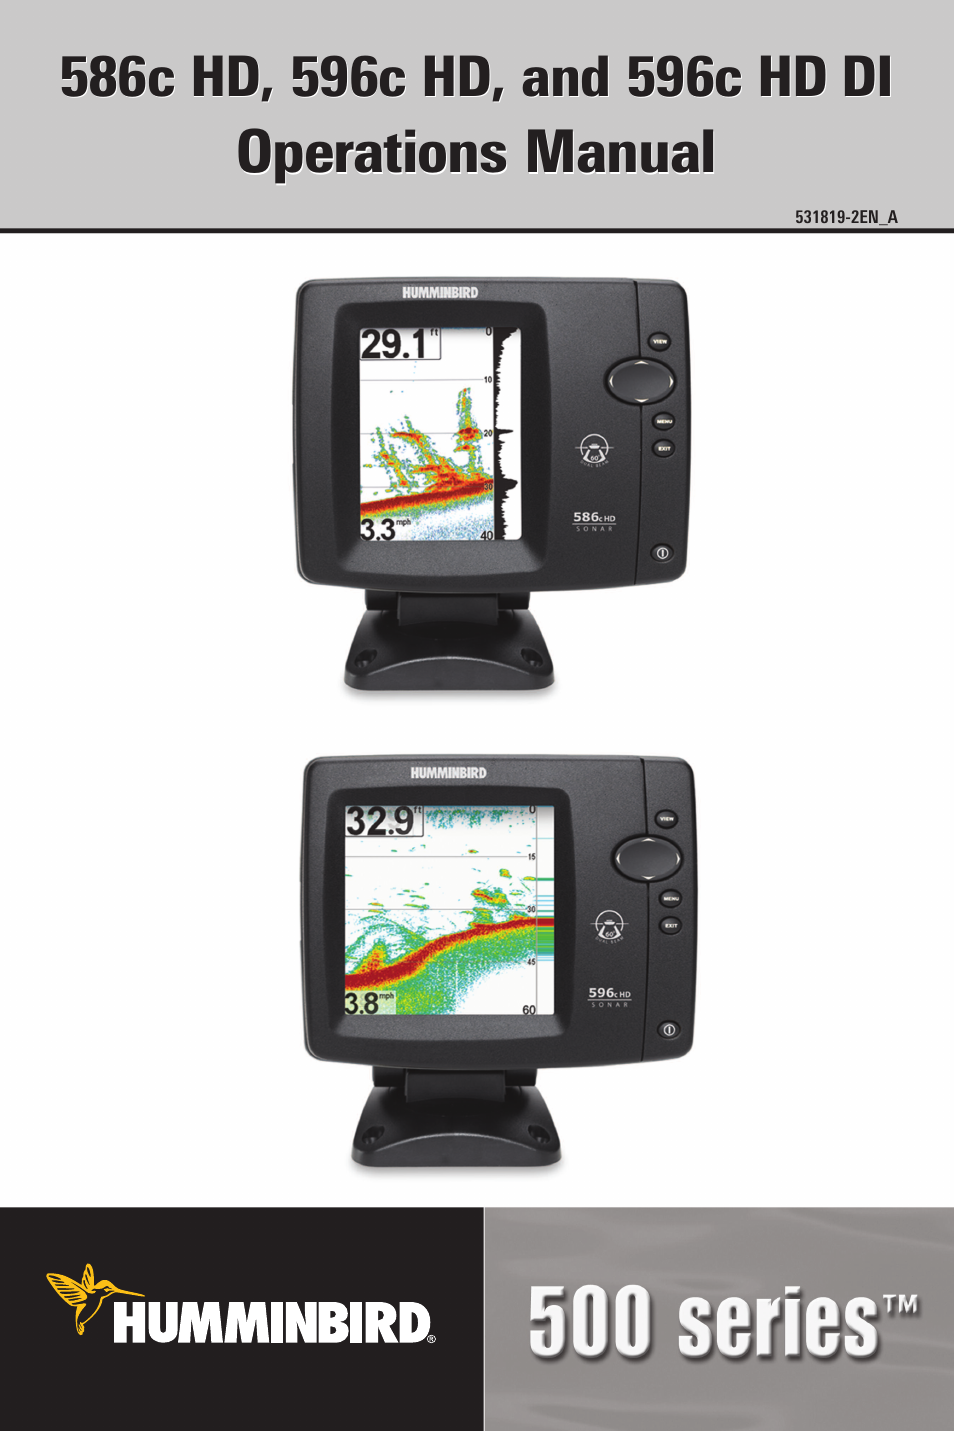 Humminbird 596C HD DI User Manual | 96 pages | Also for: 586C HD